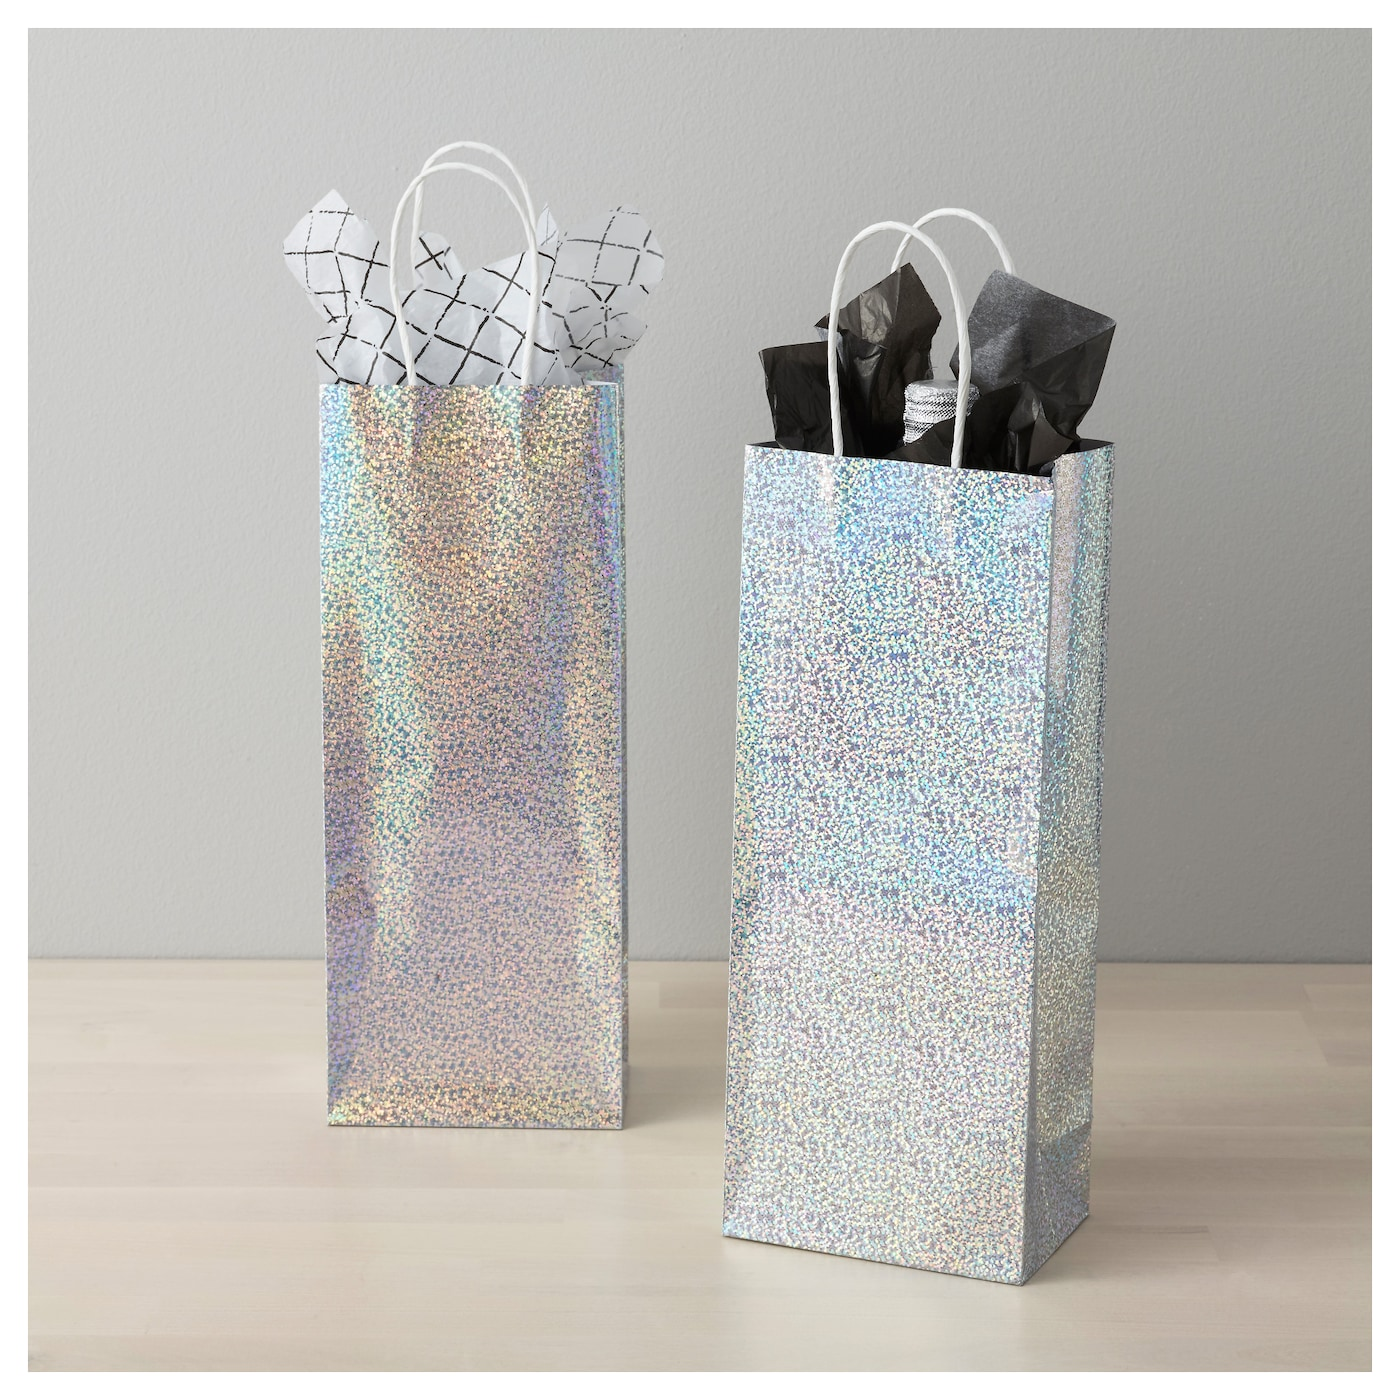 IKEA VINTER 2017 gift bag for bottle The bag is the perfect size for larger bottles or other gifts.